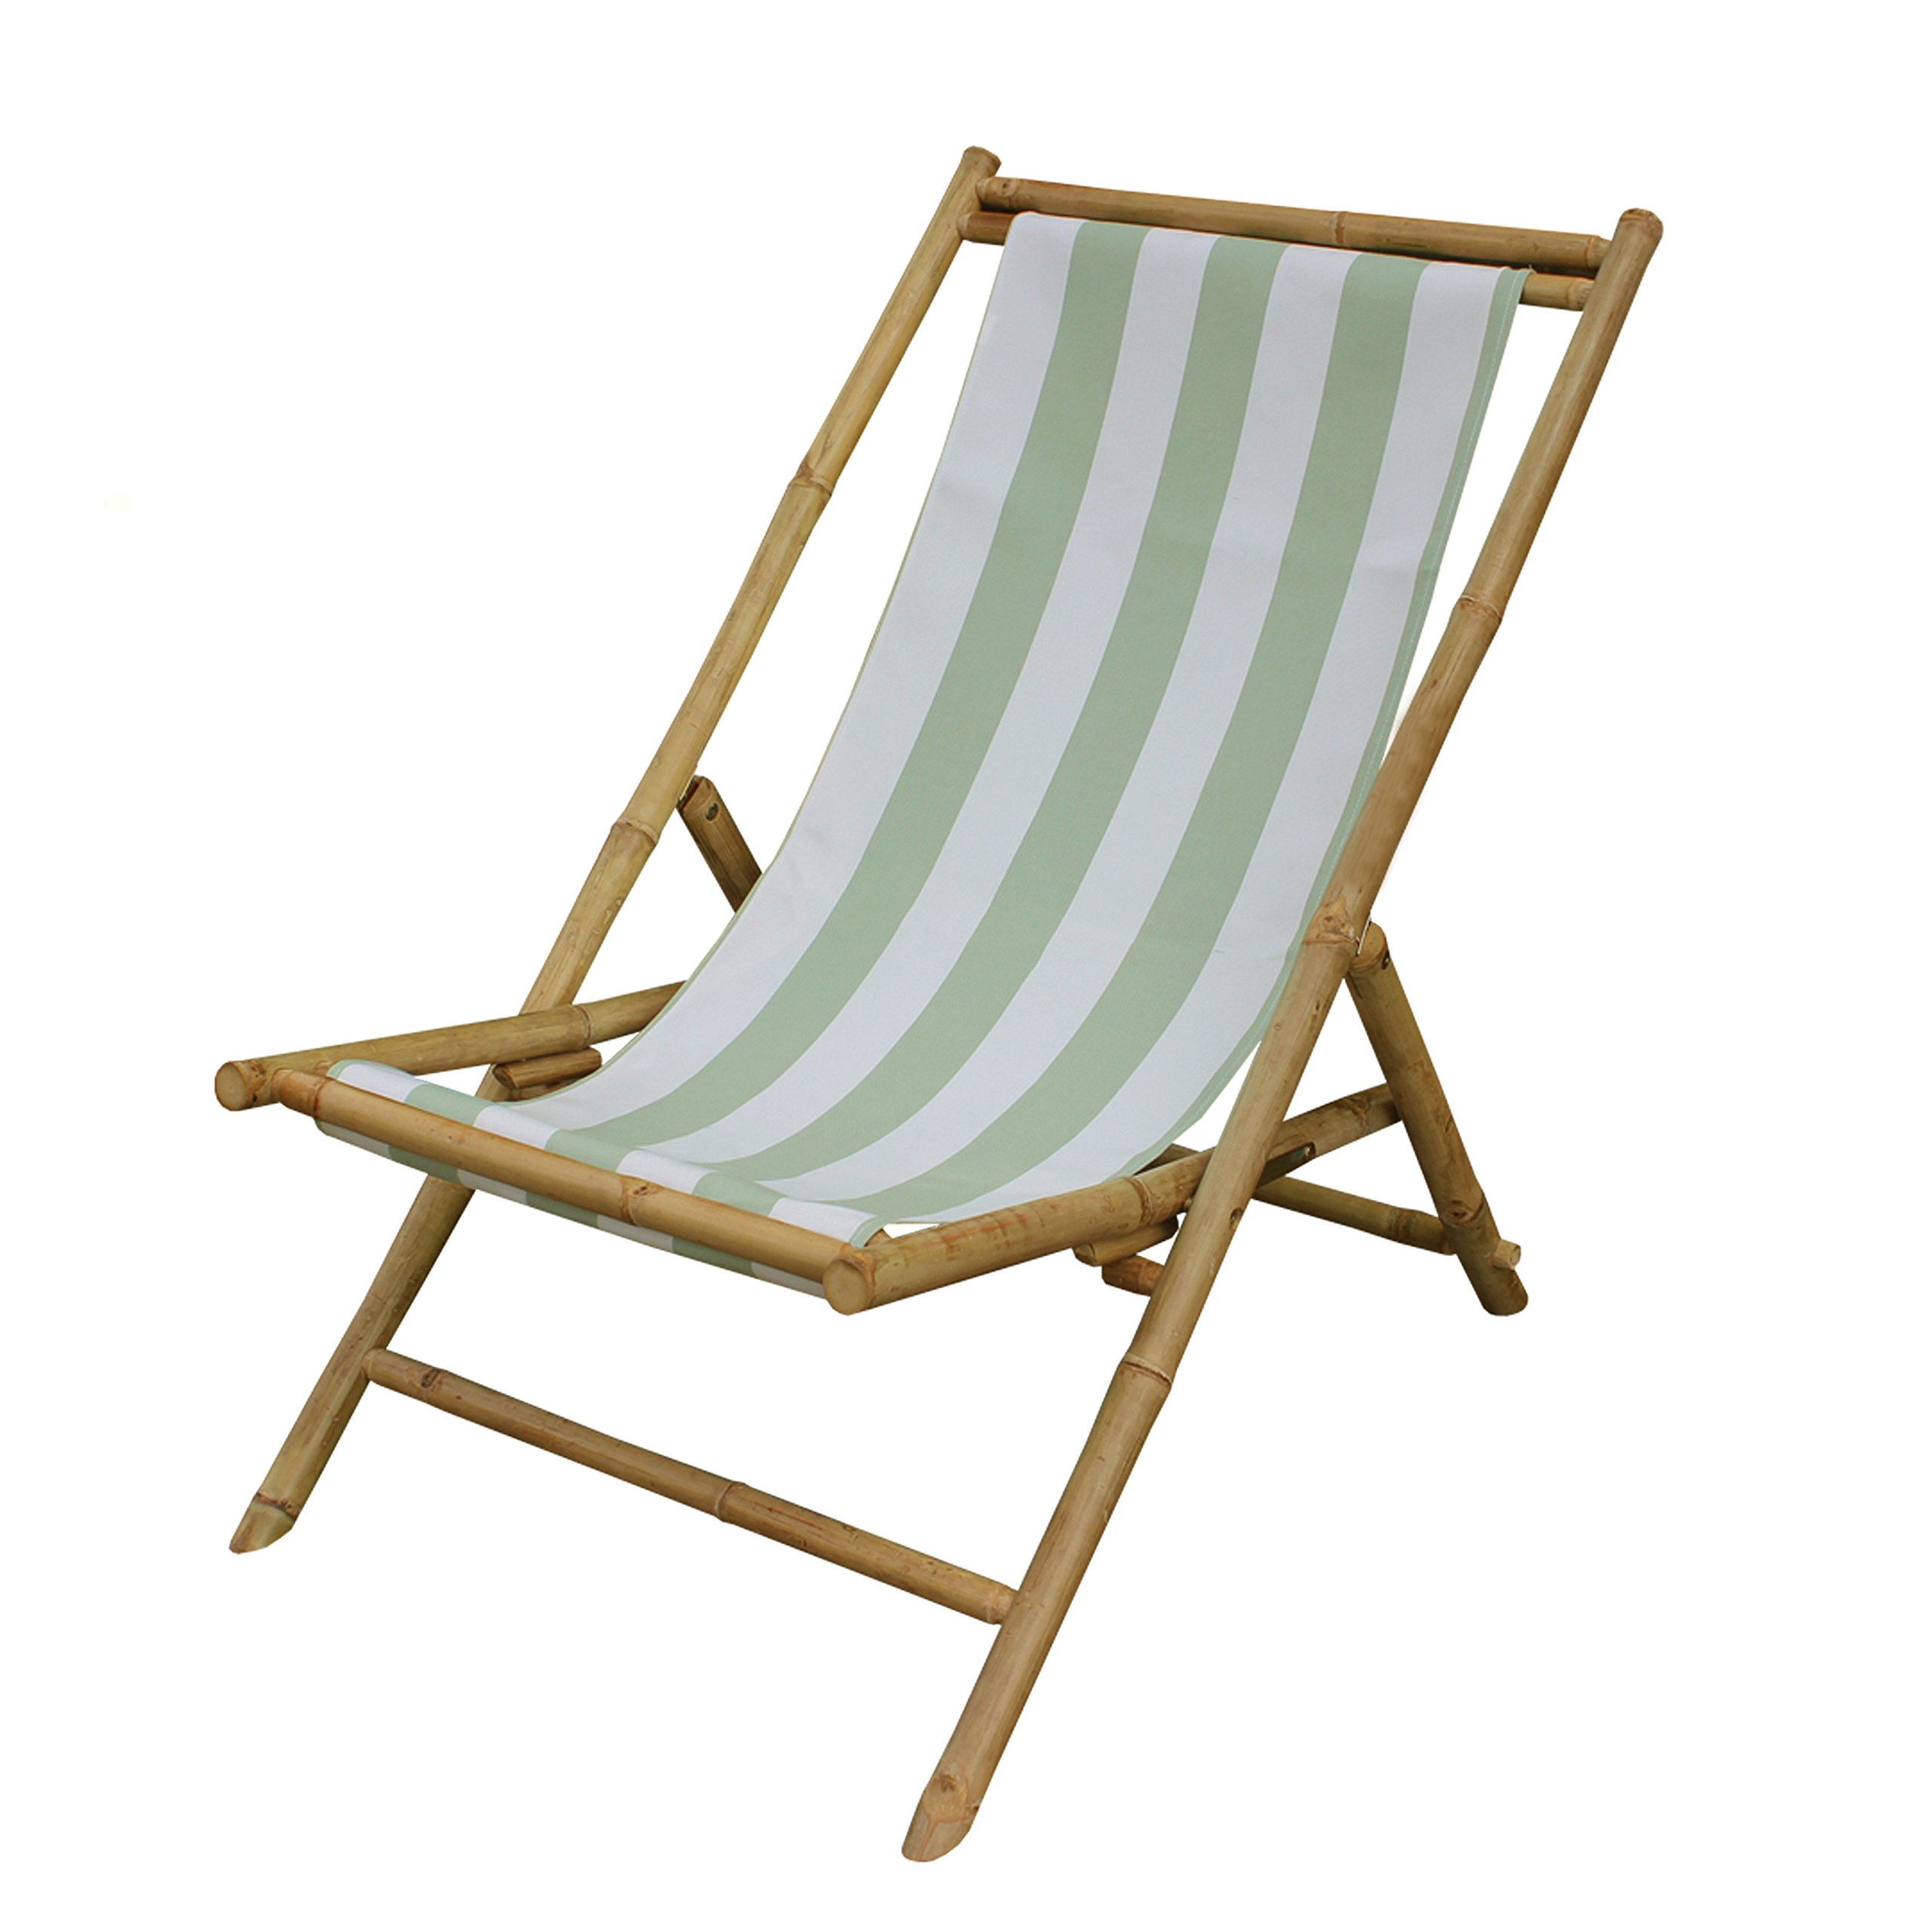 Zew Outdoor Foldable Bamboo Patio Sling Chair with Treated Canvas, 37'' L x 24'' W x 33'' H, Celadon Stripe